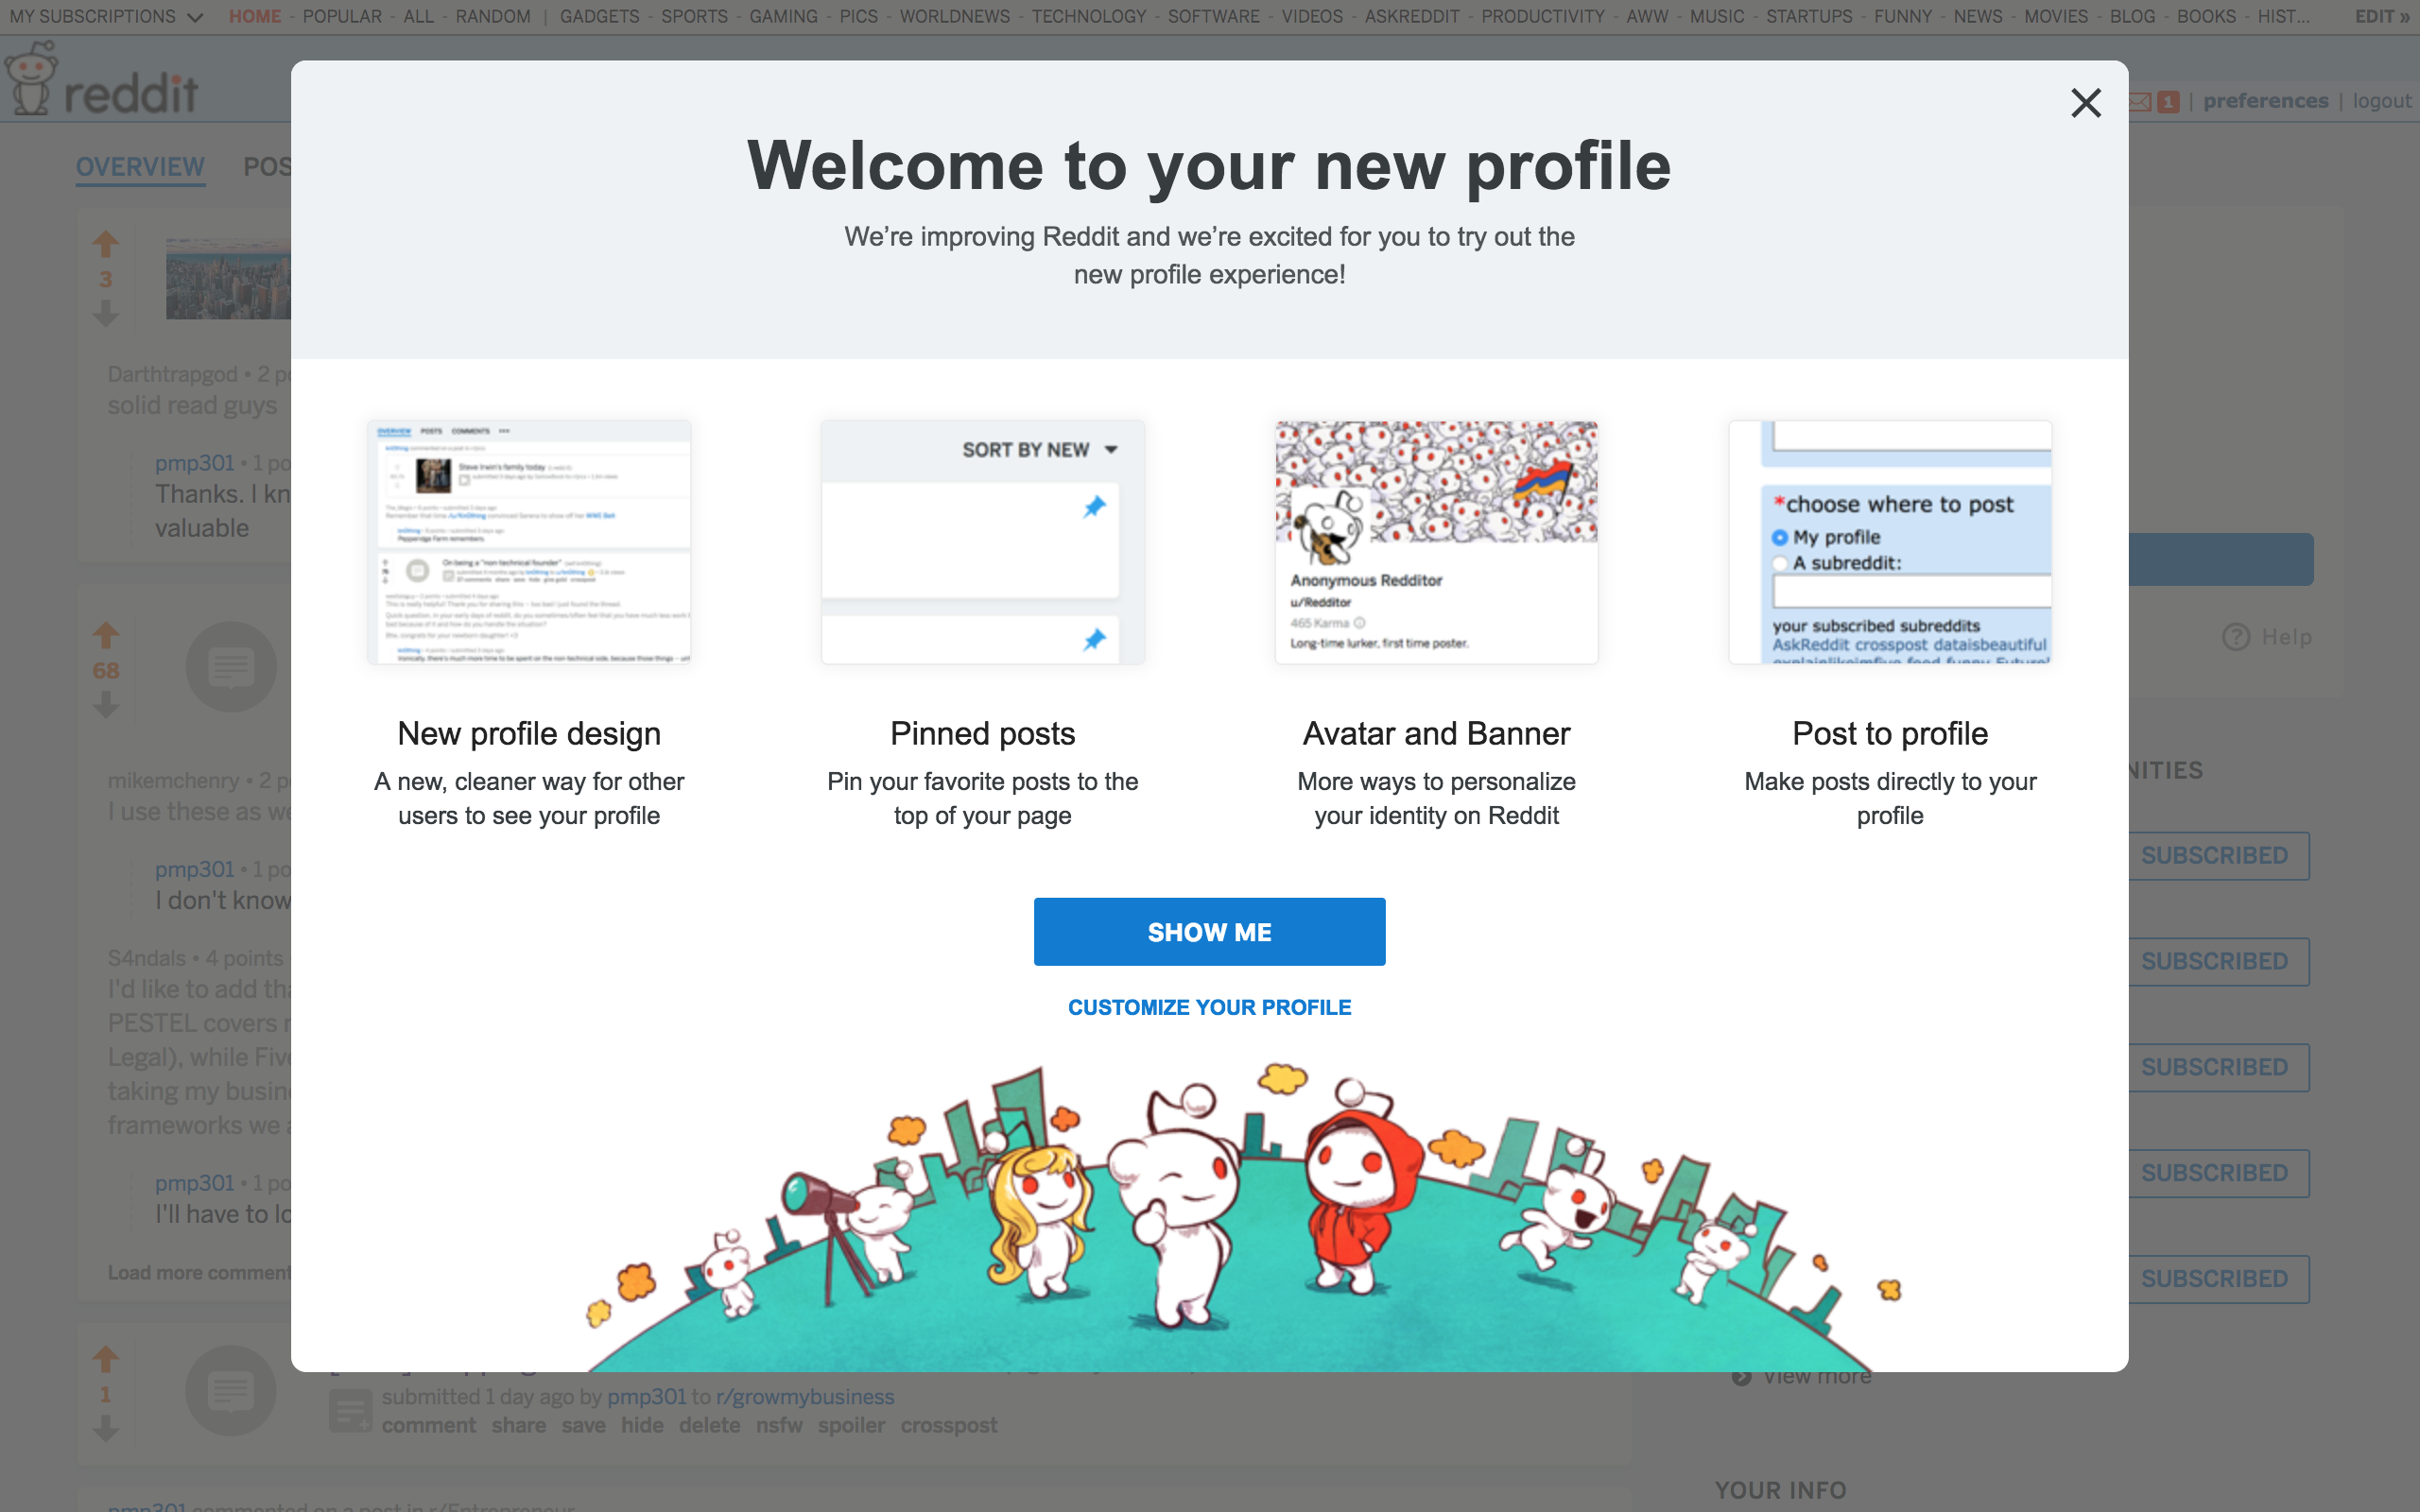 reddit s new personalized profile experience